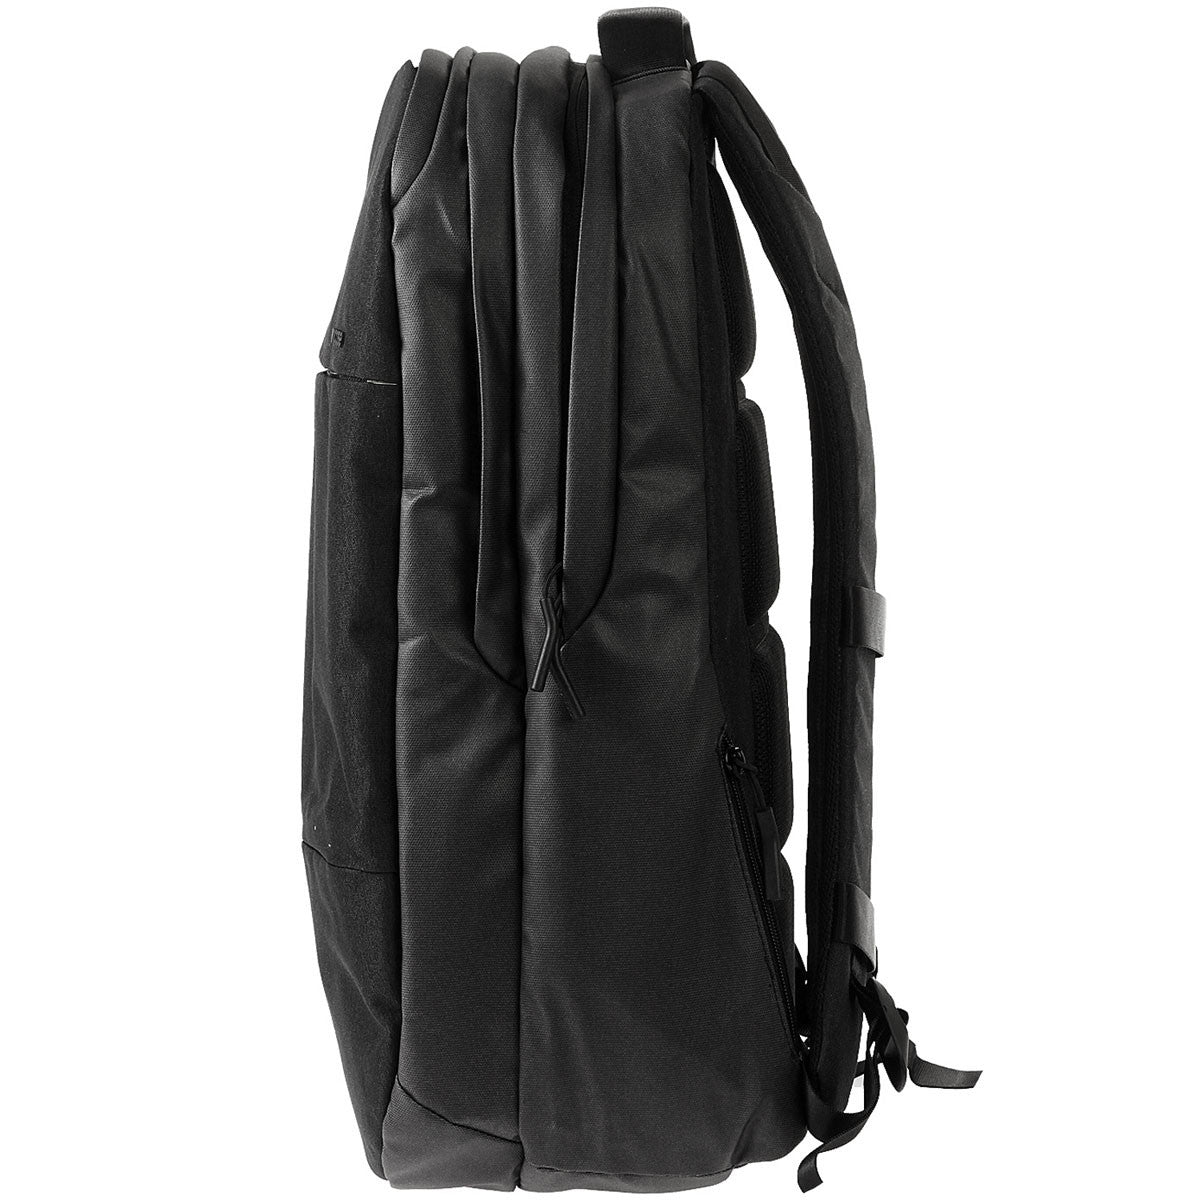 Incase: City Collection Backpack - Black (CL55450) side